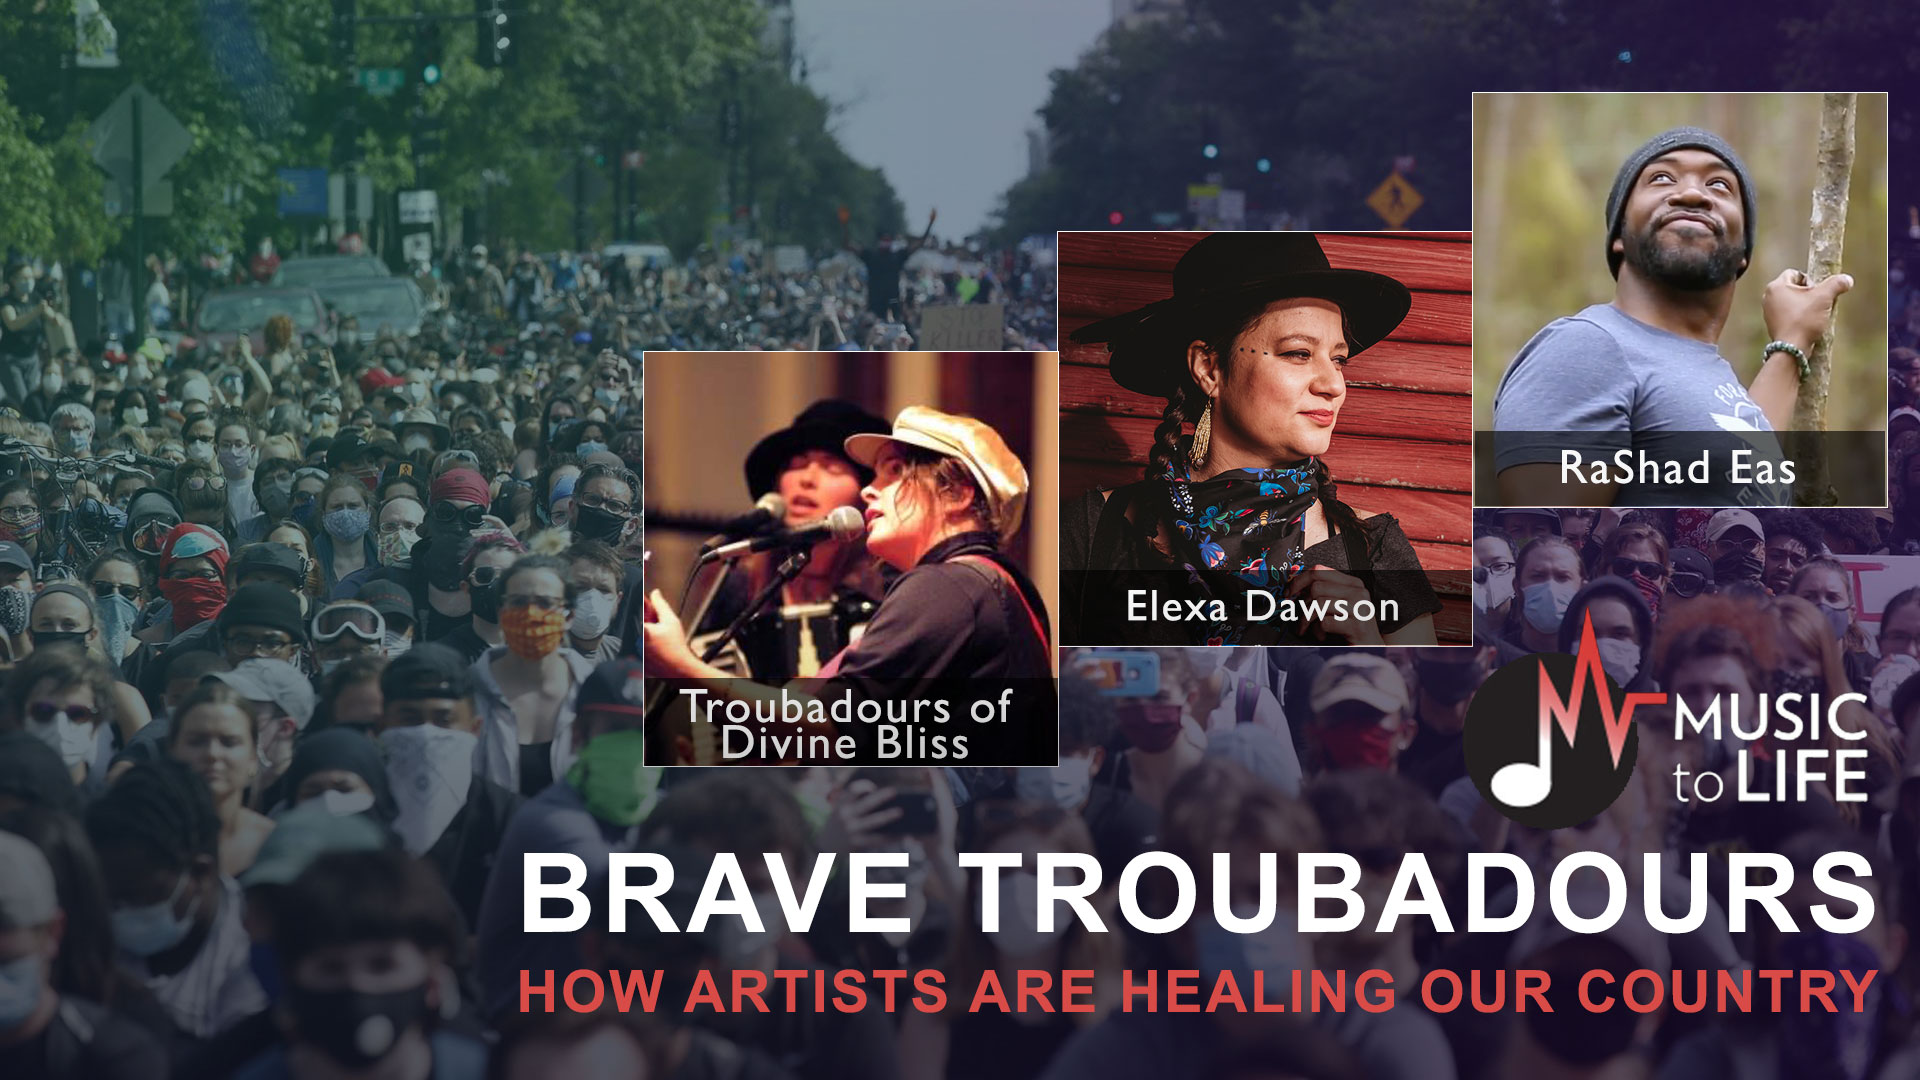 Brave Troubadours: April 22, 2021